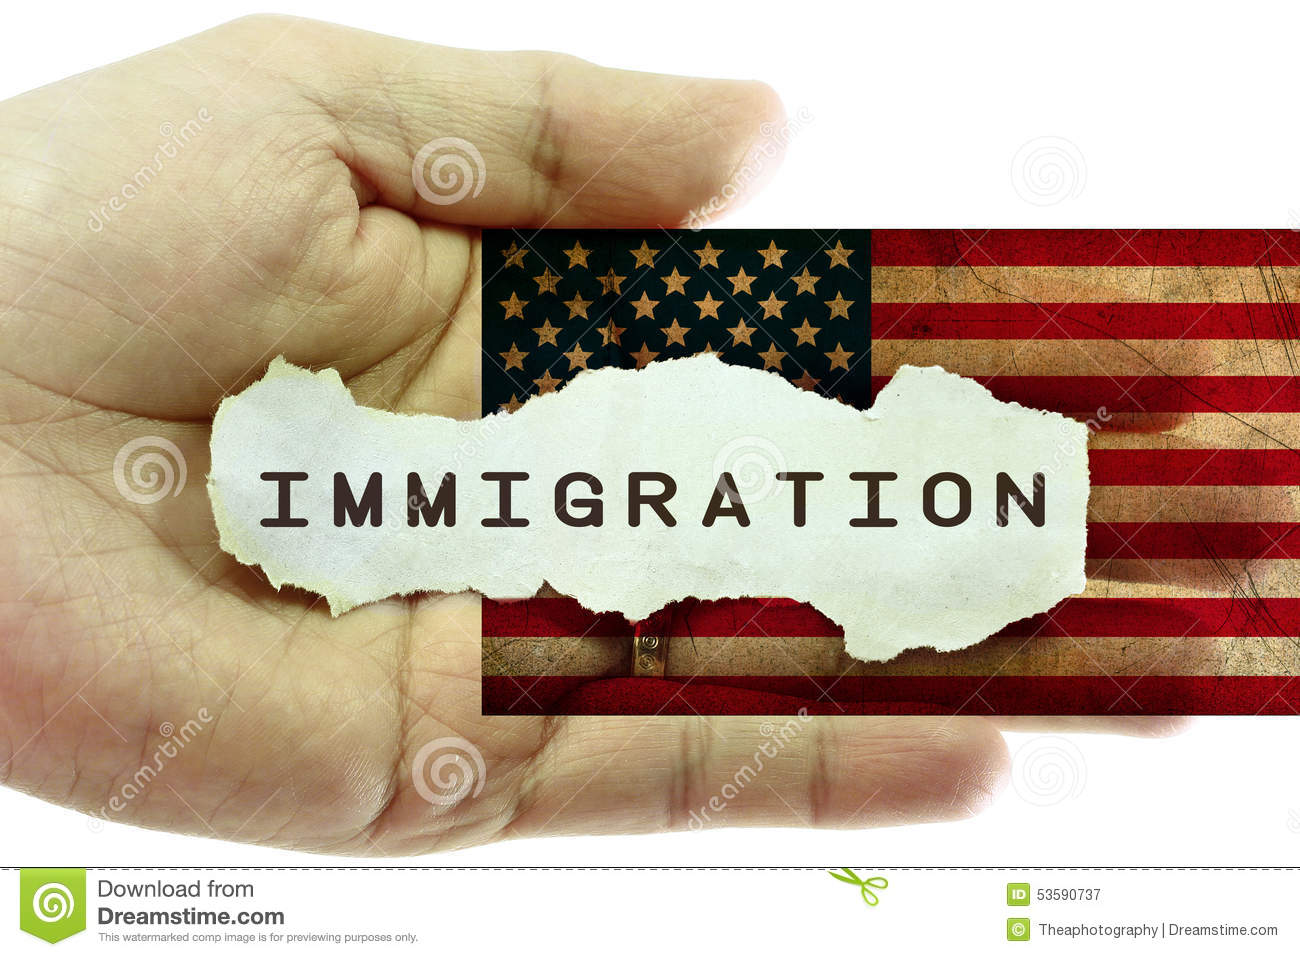 the disadvantages of immigrants document and undocumented living in the united states Undocumented immigrants in the united states: demographics and socioeconomic status by michael k gusmano how many undocumented immigrants live in the united states.